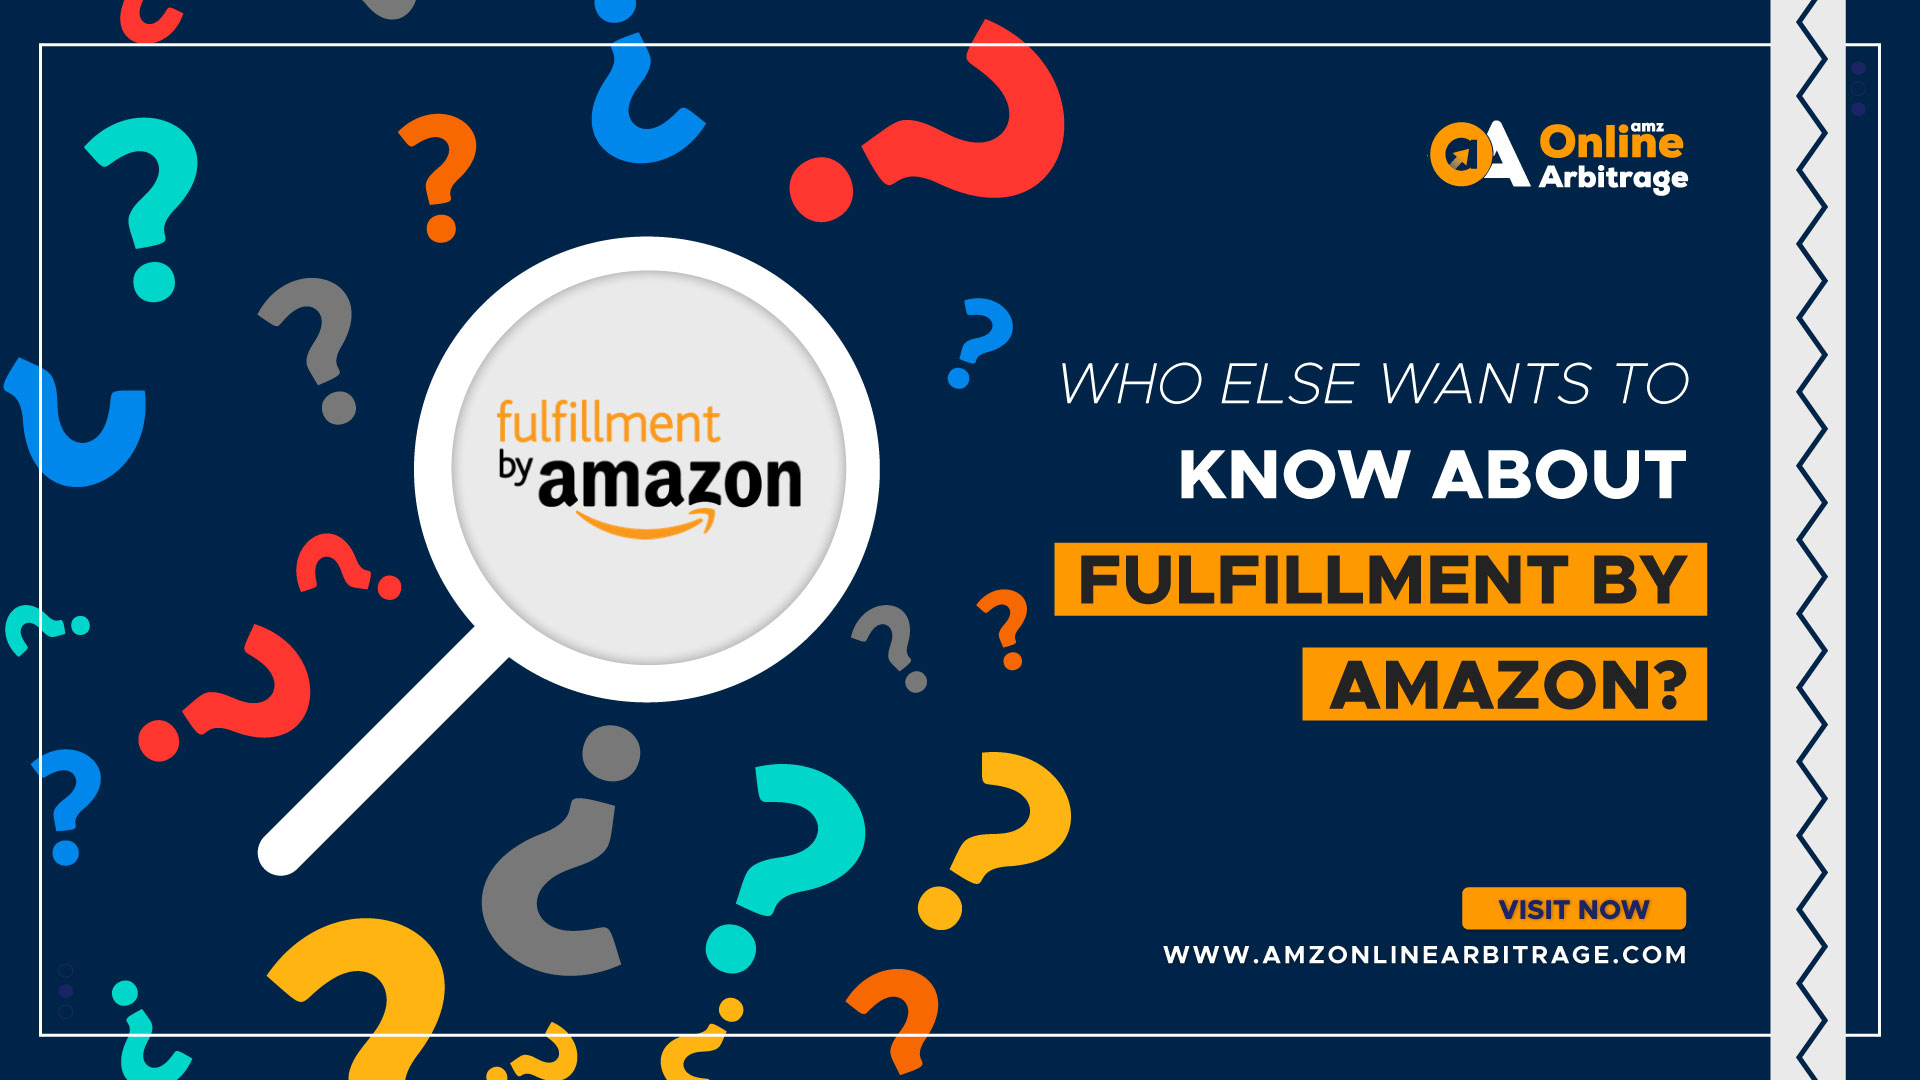 WHO ELSE WANTS TO KNOW ABOUT FULFILLMENT BY AMAZON?